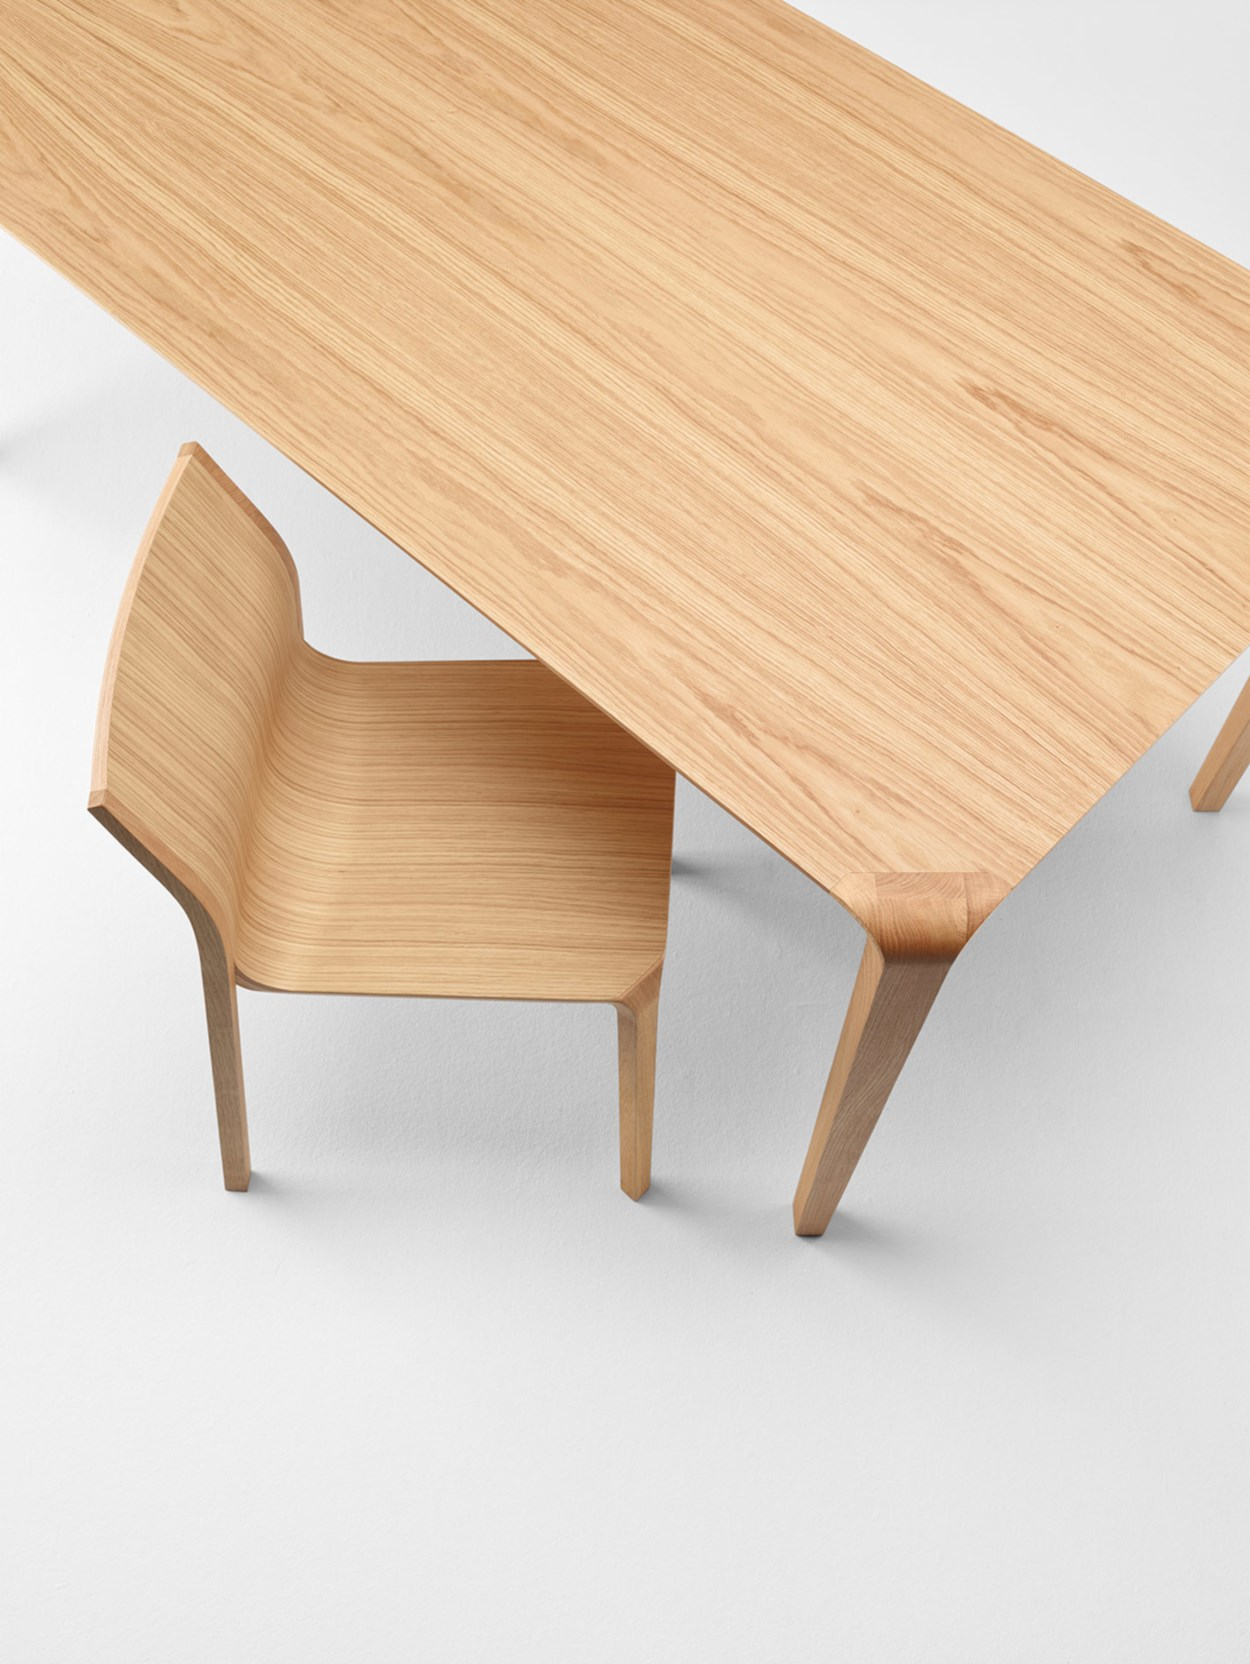 ondarreta-silu-table-chairs-01.jpg